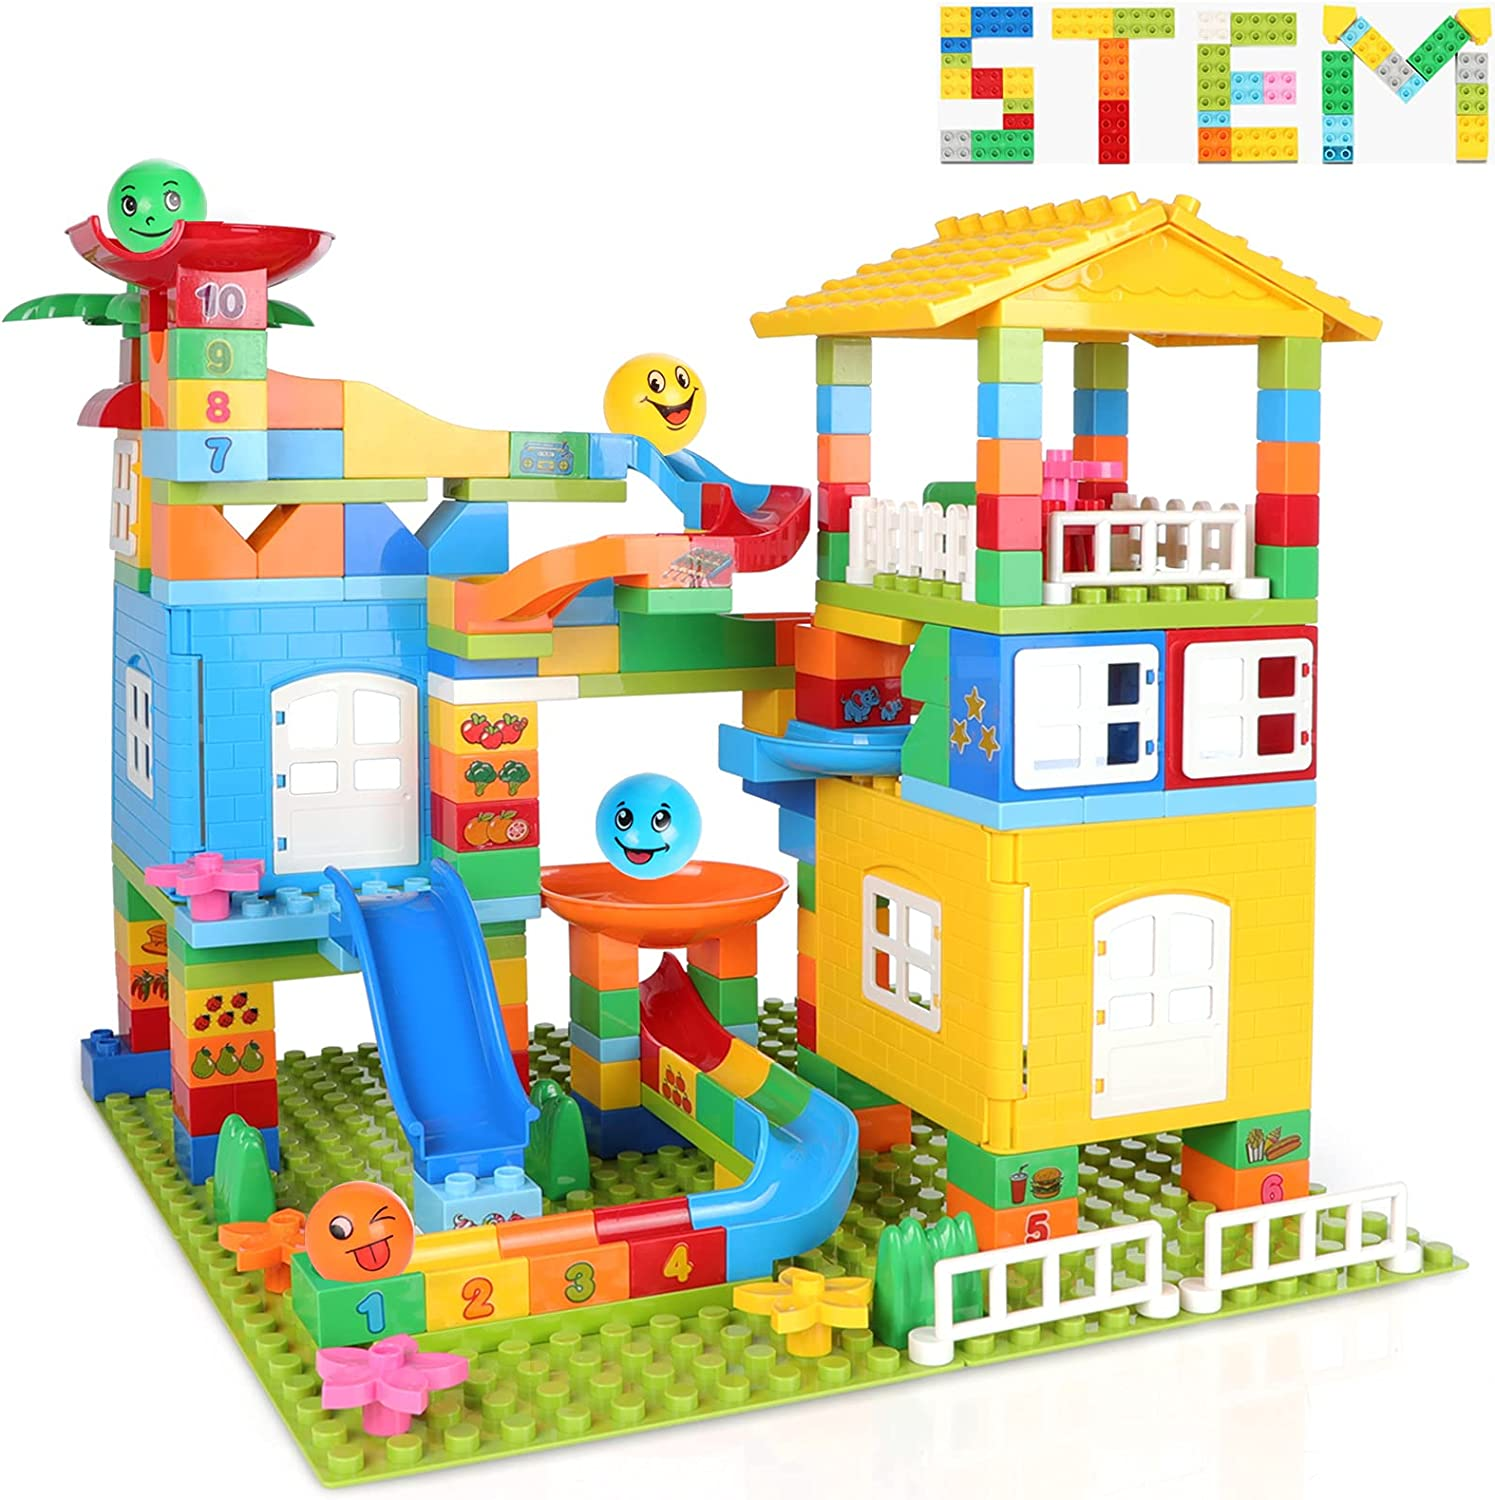 175 Max 46% 55% OFF OFF pcs Marble Run Castle Exercise Toddlers Building Blocks for